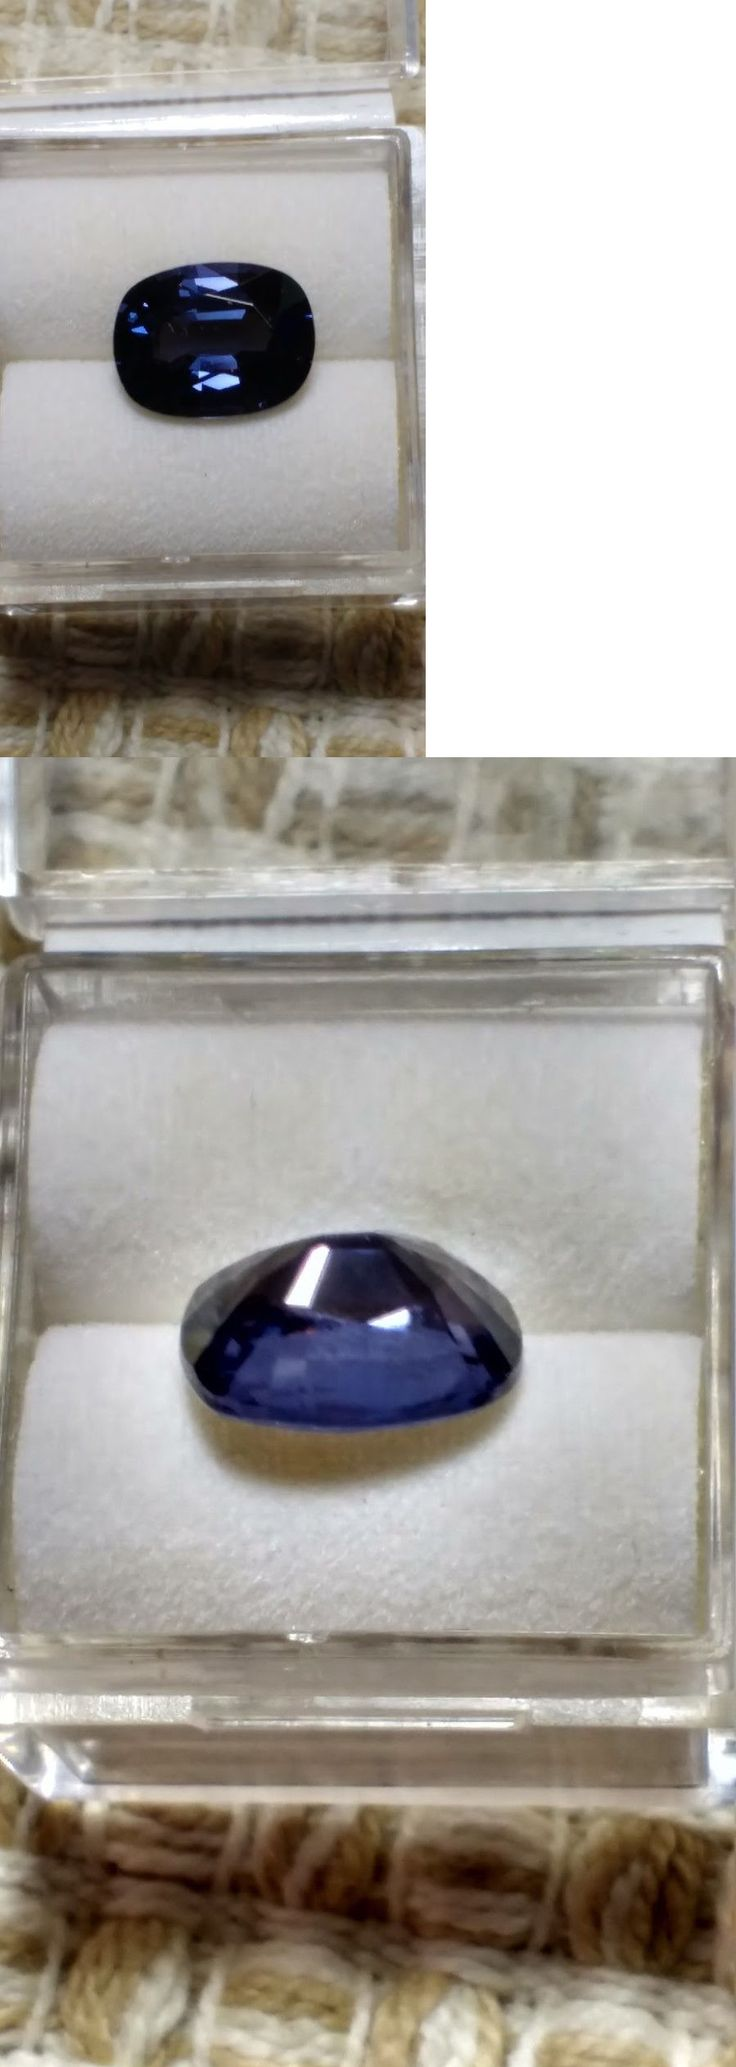 Tourmaline 10278: 3.75Ct Natural Purple Blue Spinel Cushion - Color Changer!! -> BUY IT NOW ONLY: $280 on eBay!